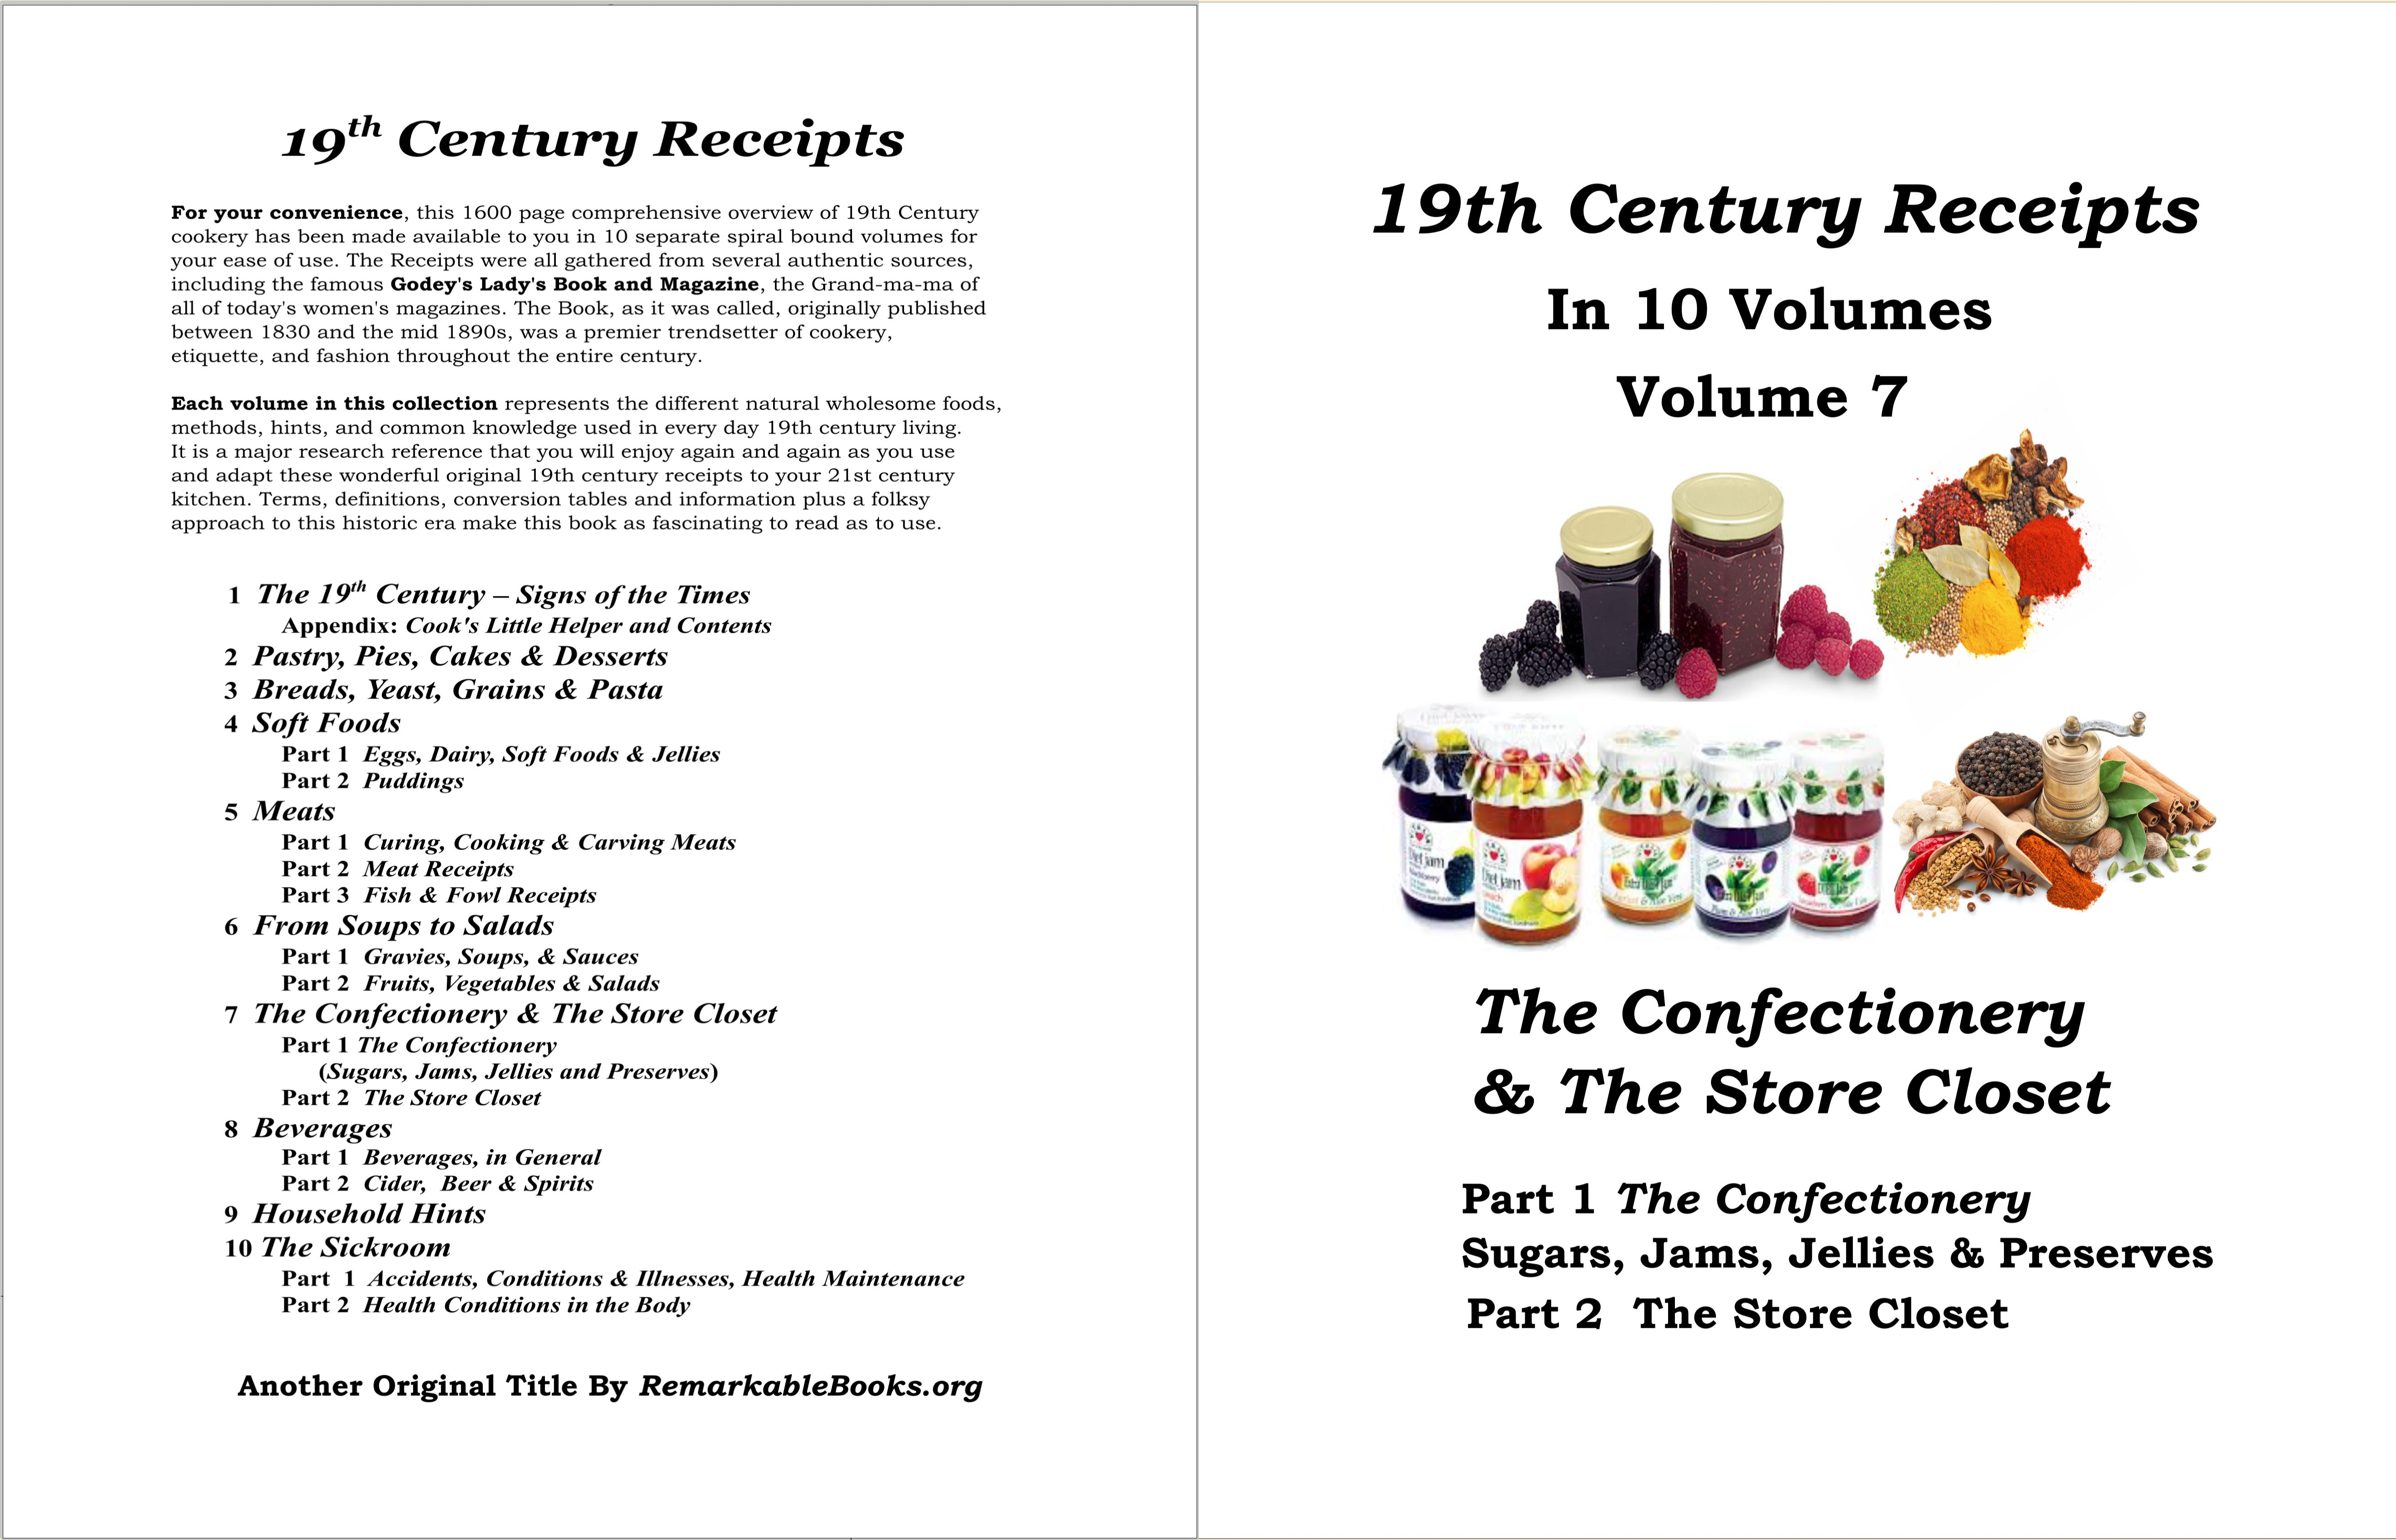 19th Century Receipts Volume 7 cover image